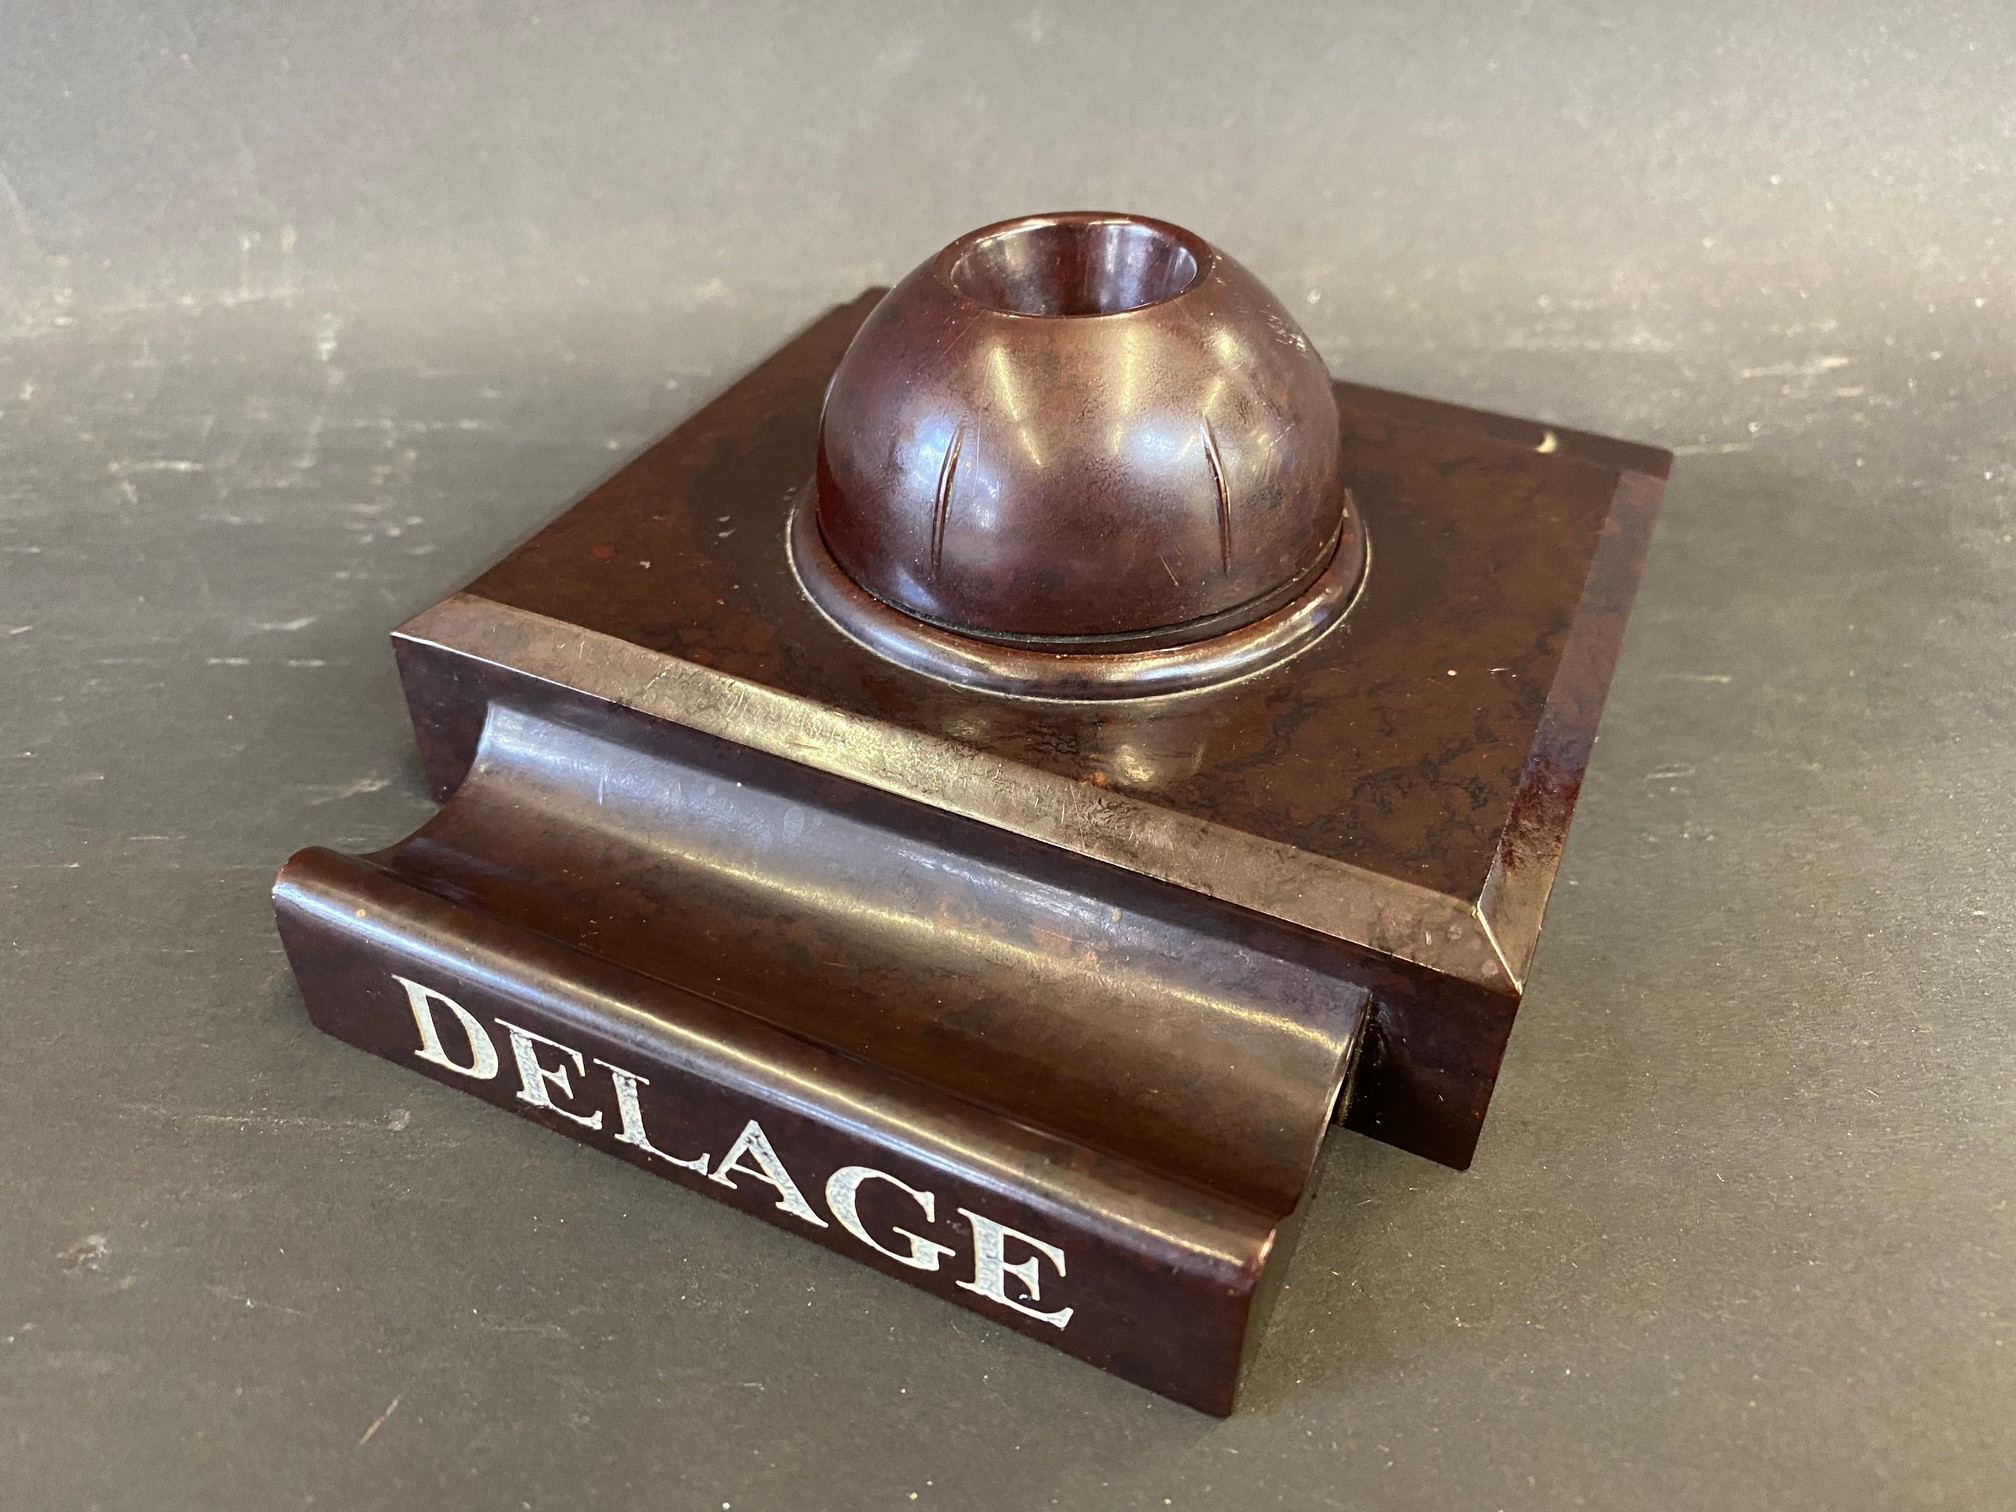 A Delage bakelite style pen holder and inkwell, possibly a salesman's desk piece in a dealership.